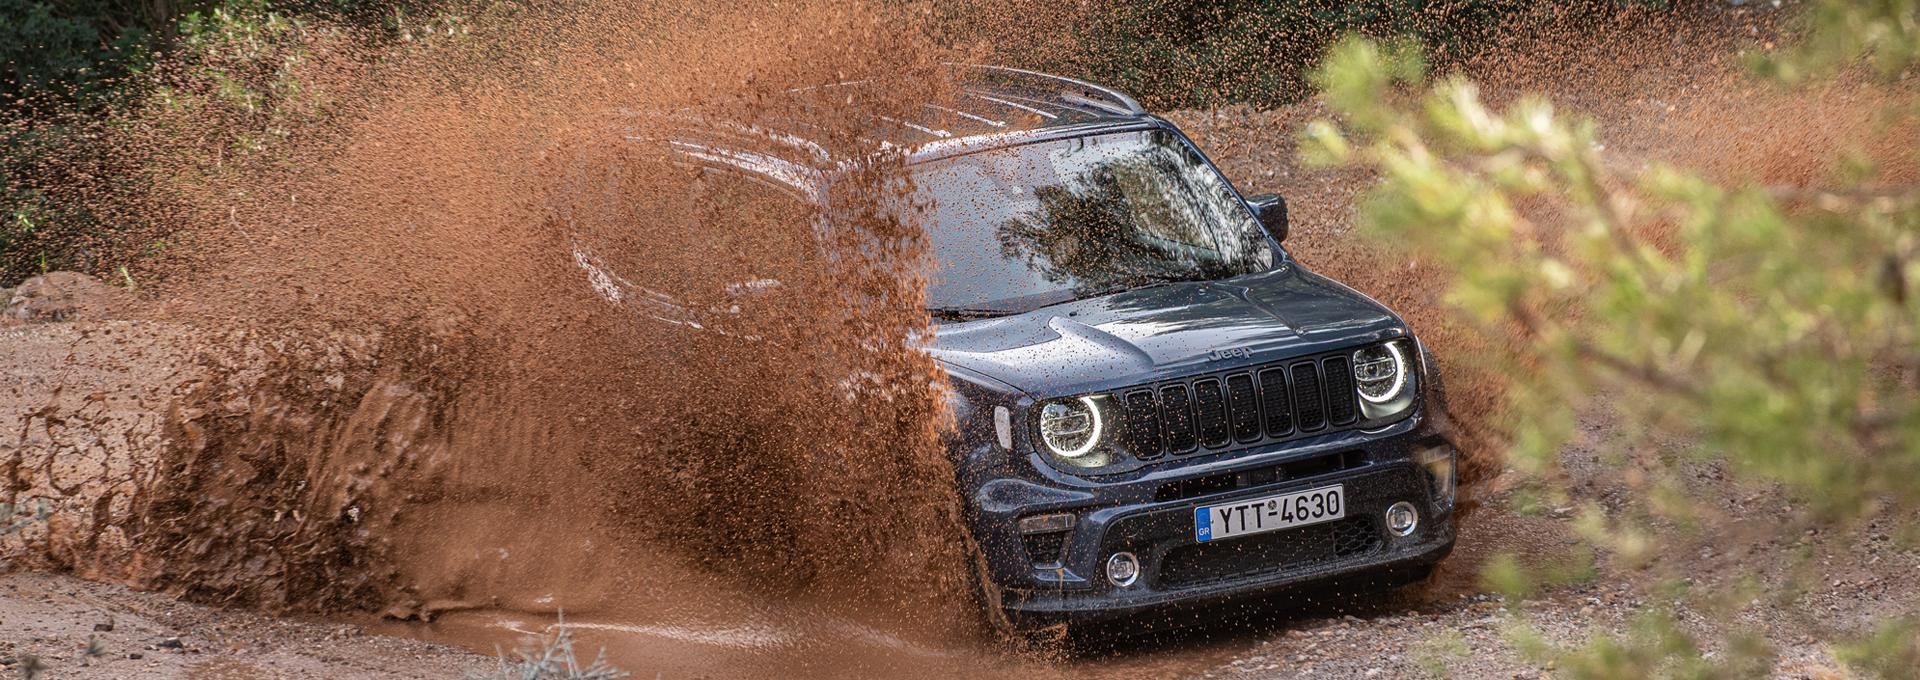 Jeep Renegade PHEV 4xe S 240Ps